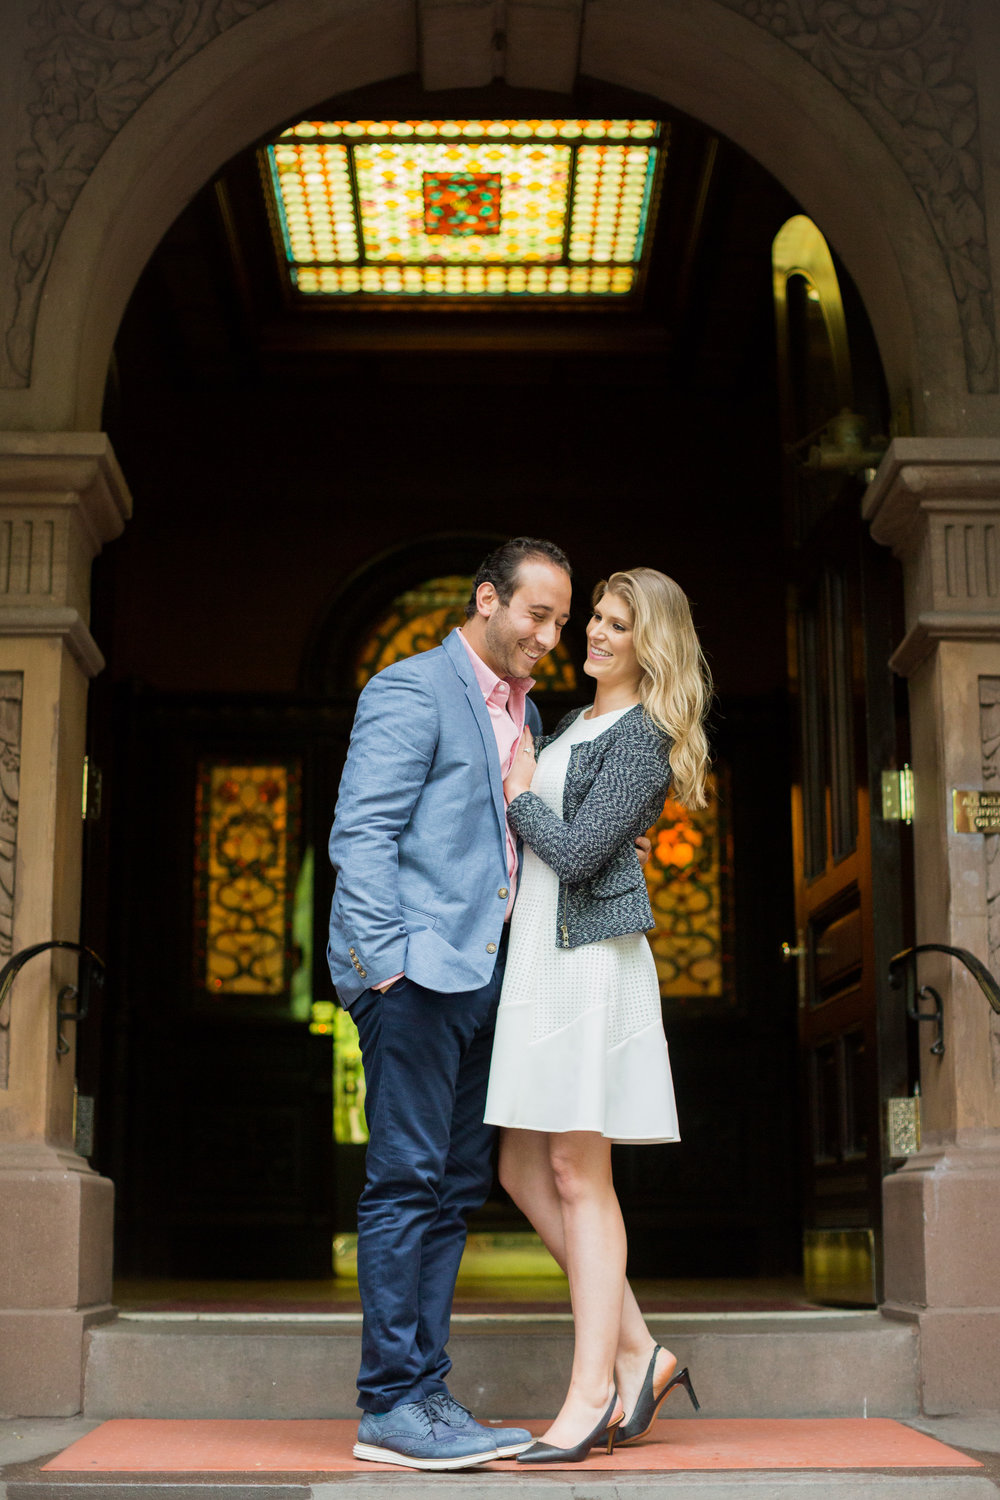 Melissa Kruse Photography - Courtney & JP Gramercy NYC Engagement Photos-178.jpg